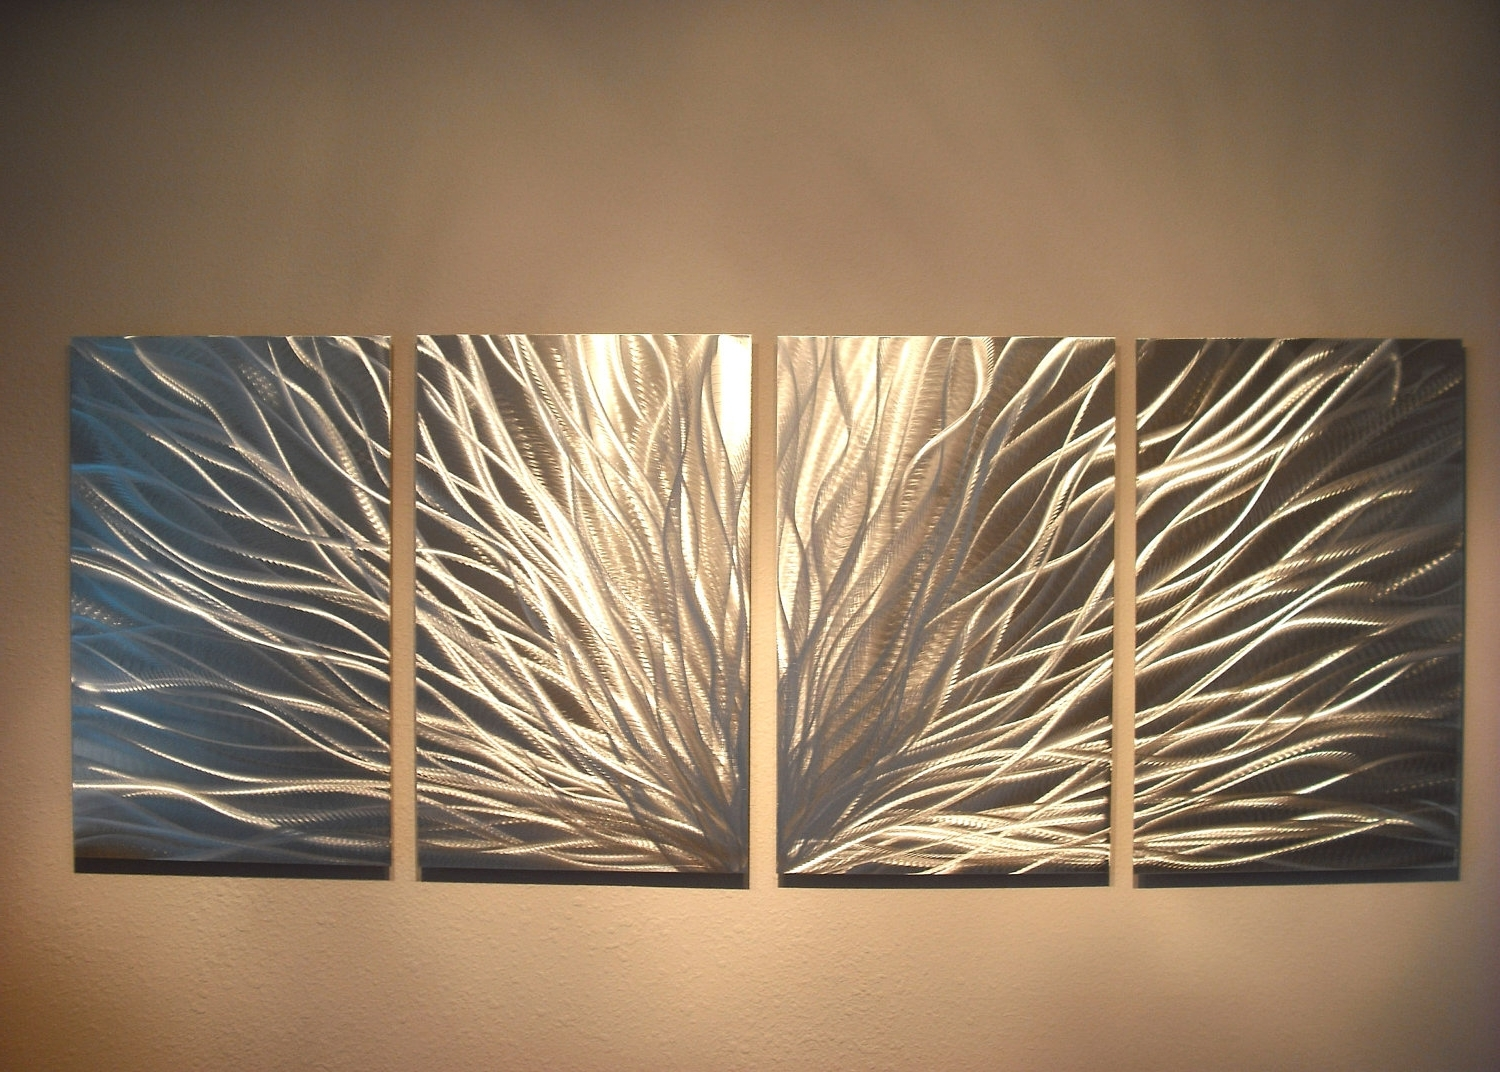 Famous Home Decor: Perfect Abstract Metal Wall Art With Radiance Art Intended For Modern Wall Art Uk (View 6 of 15)